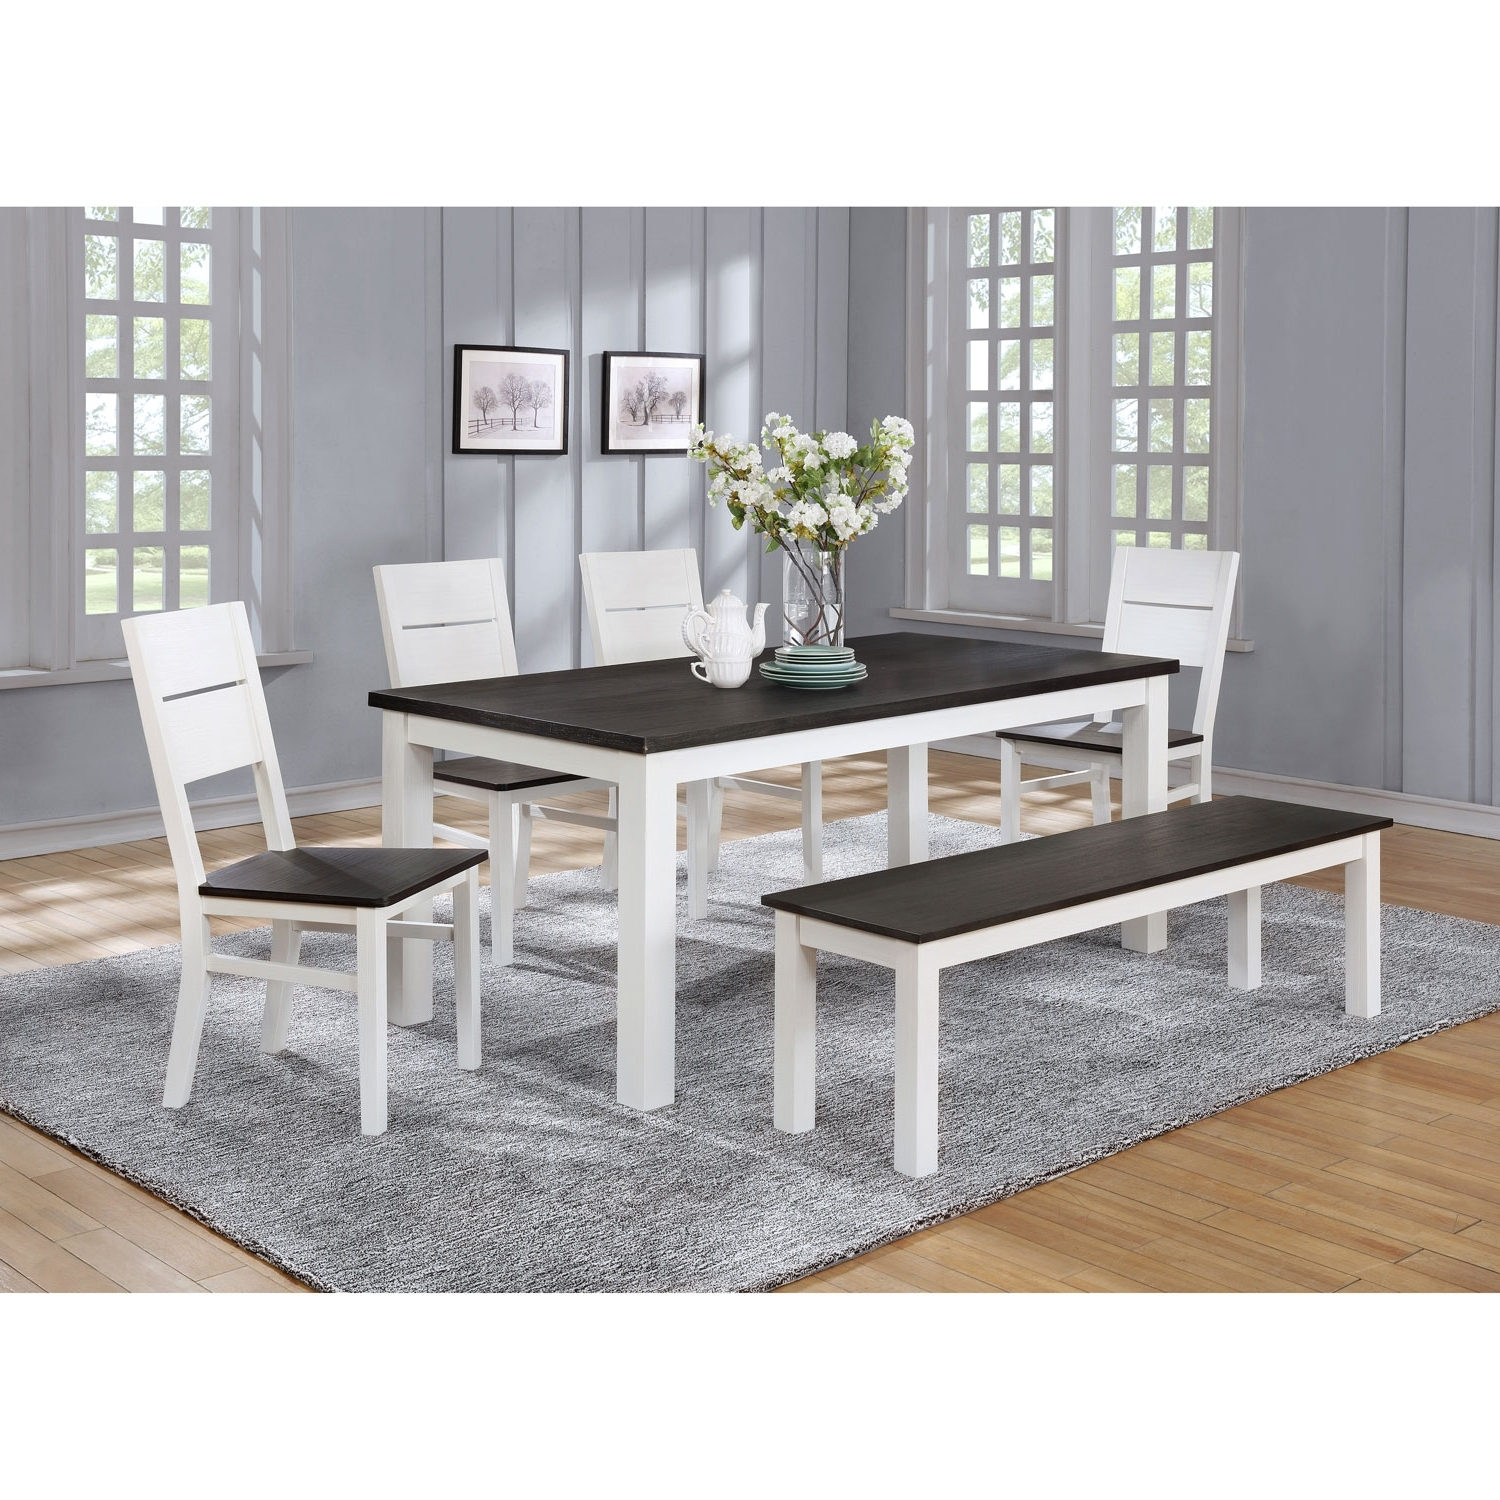 Best And Newest Laurent 7 Piece Rectangle Dining Sets With Wood And Host Chairs With Lauren Traditional 6 Seating Rectangular Casual Dining Table – White (View 5 of 25)